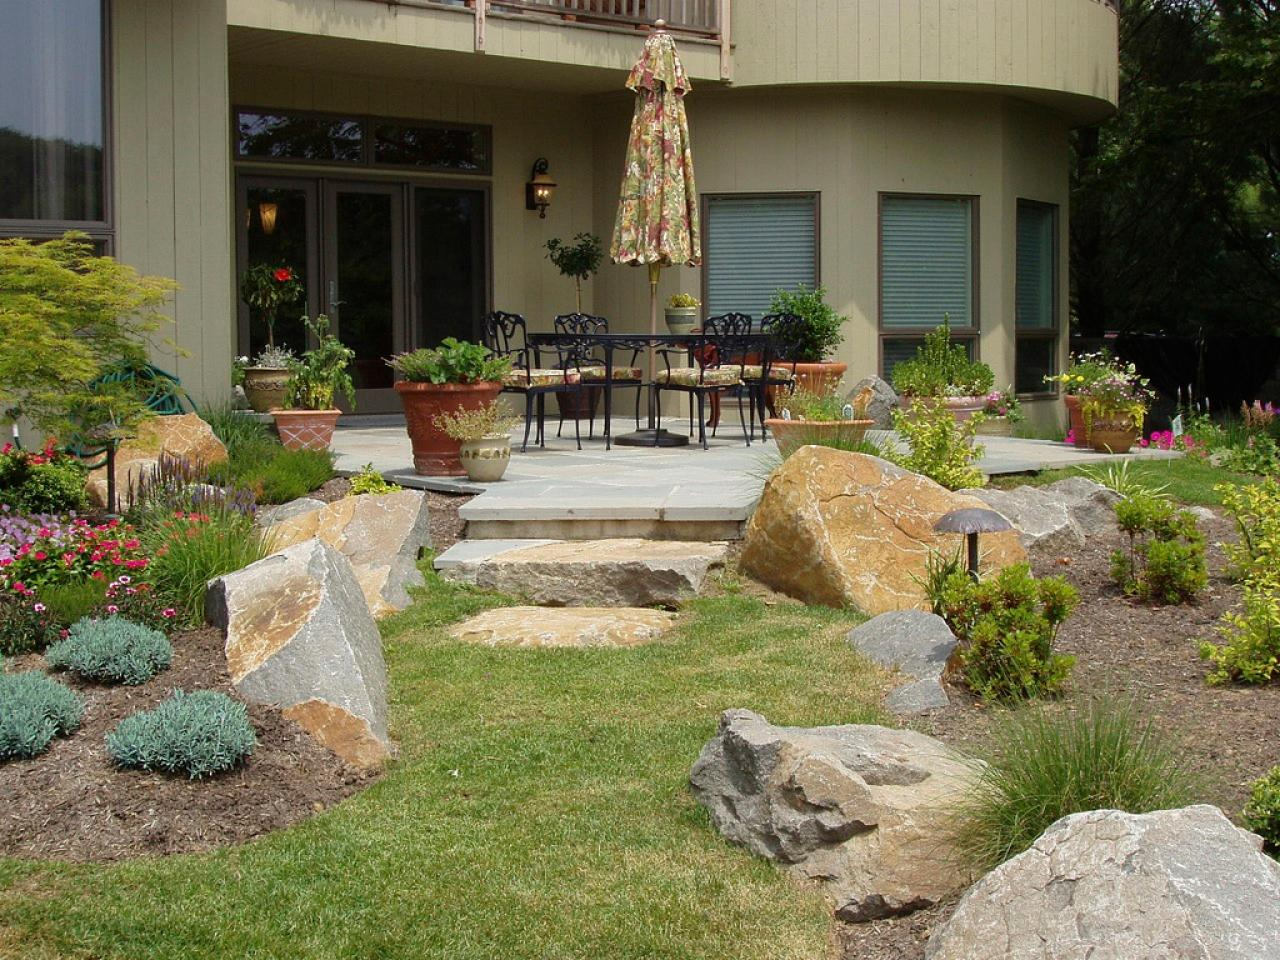 Patio landscaping ideas hgtv for Outdoor landscaping ideas